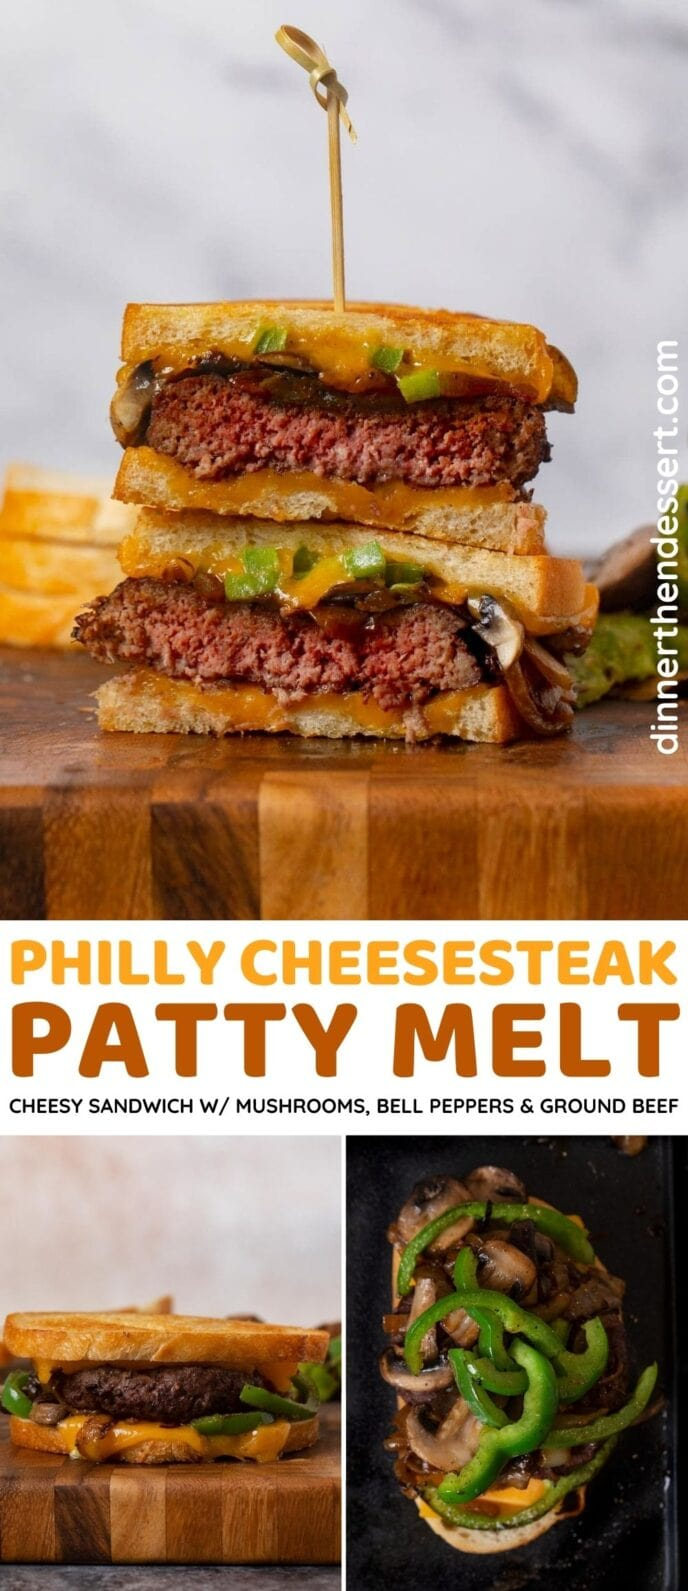 Philly Cheesesteak Patty Melt collage